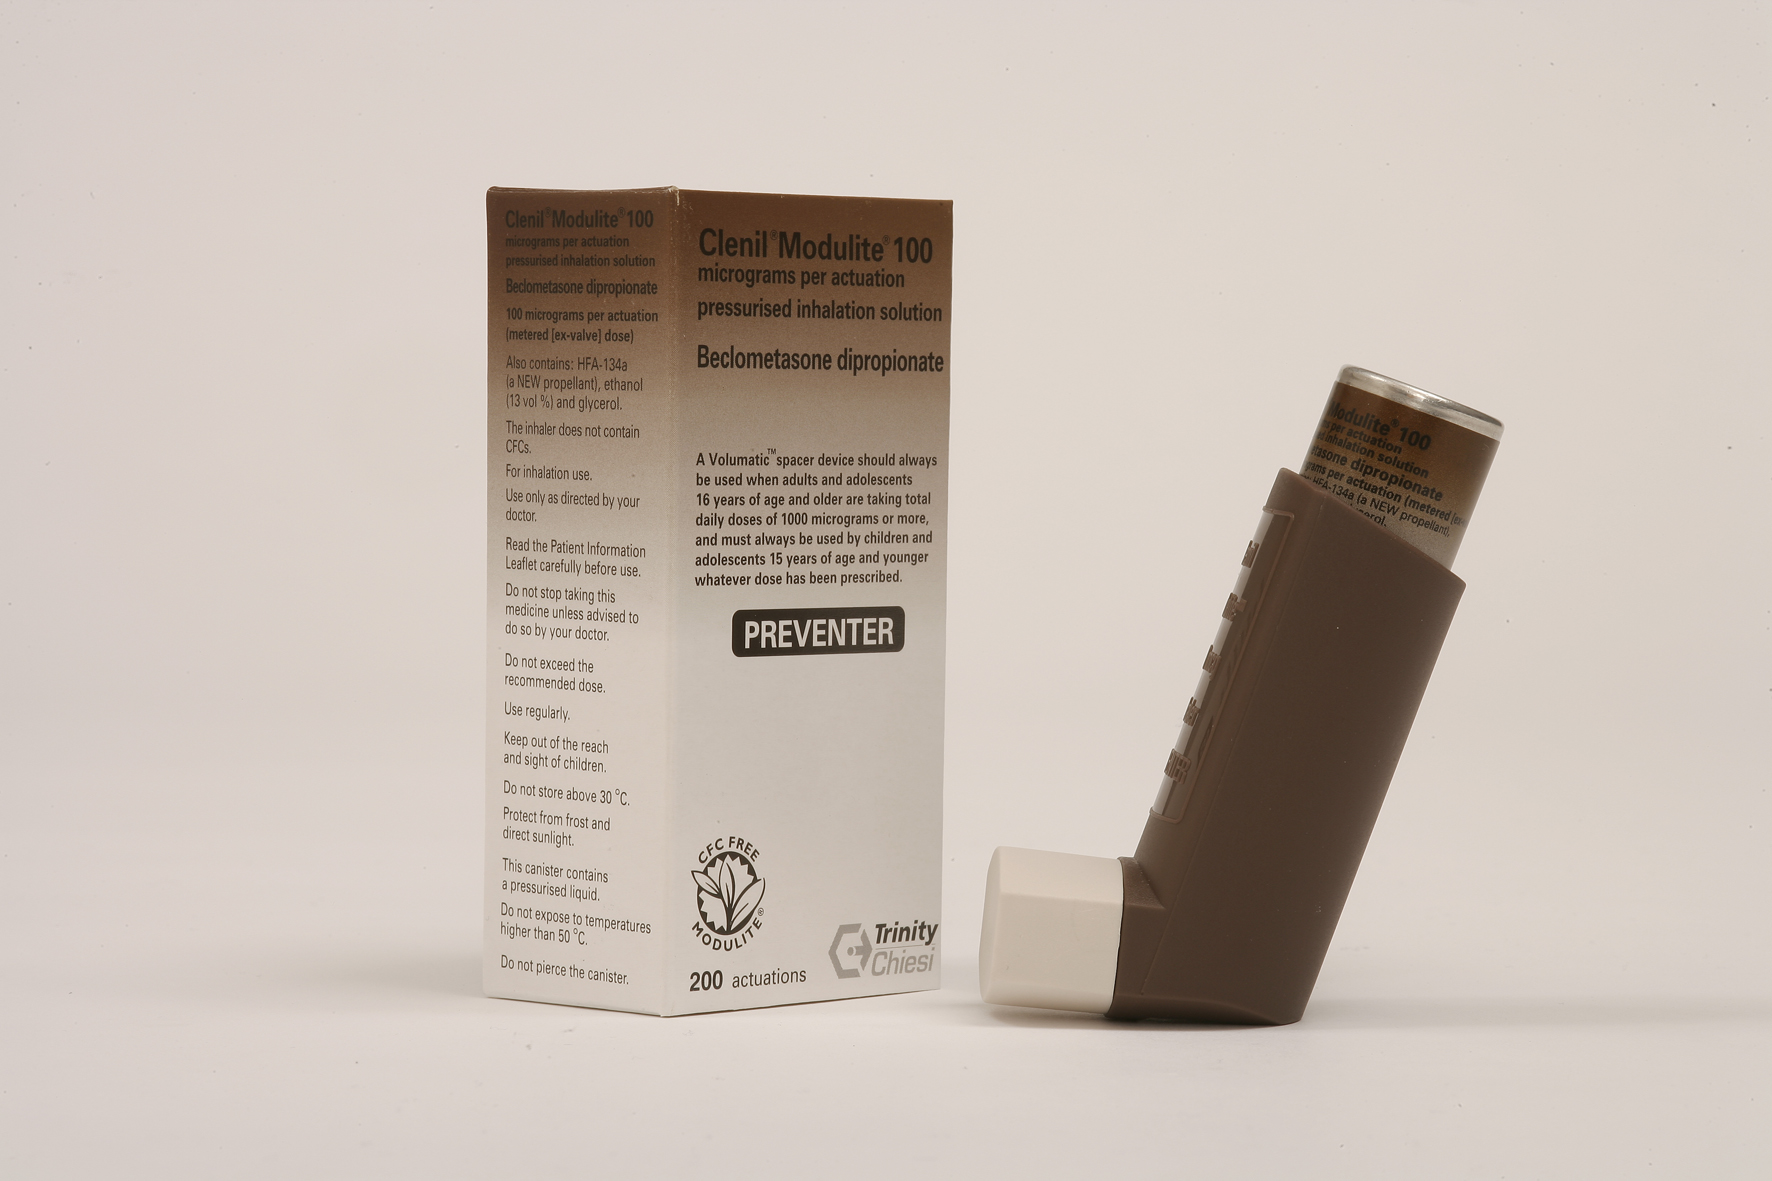 oral steroid for asthma side effects